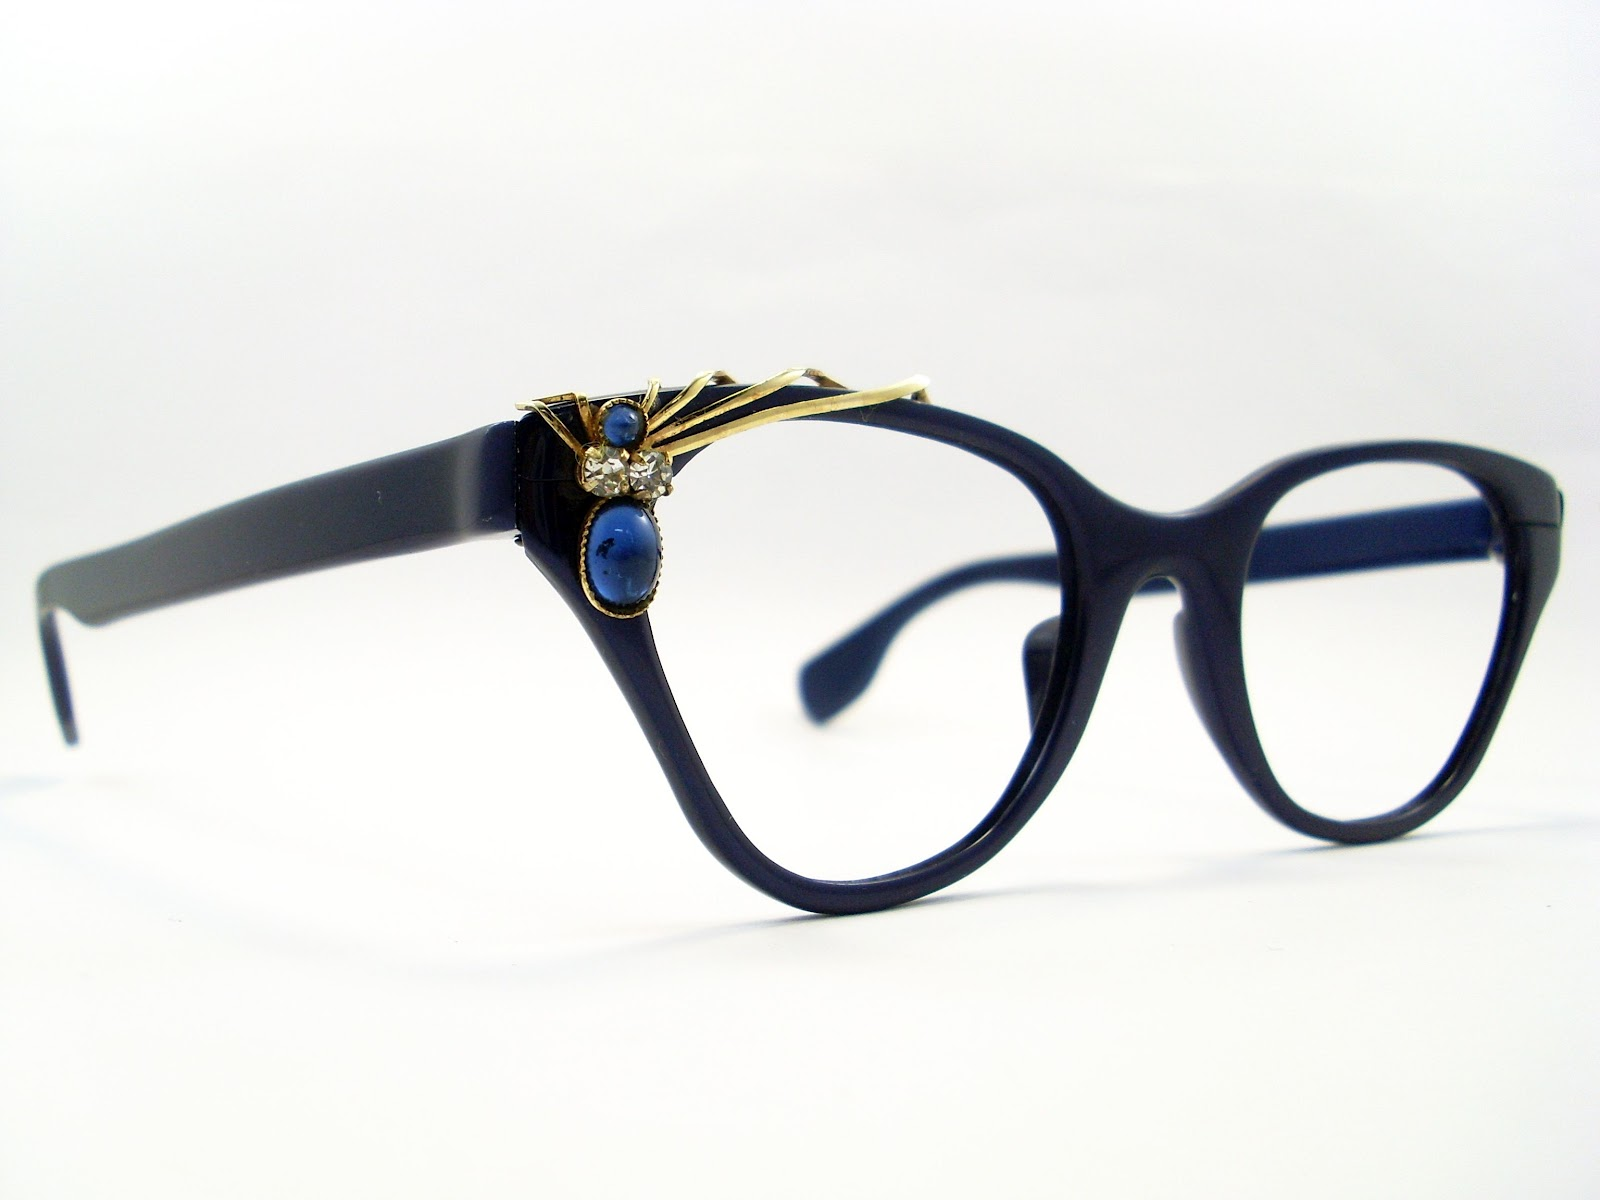 Vintage Glasses Frames Cat Eye : Vintage Eyeglasses Frames Eyewear Sunglasses 50S: VINTAGE ...